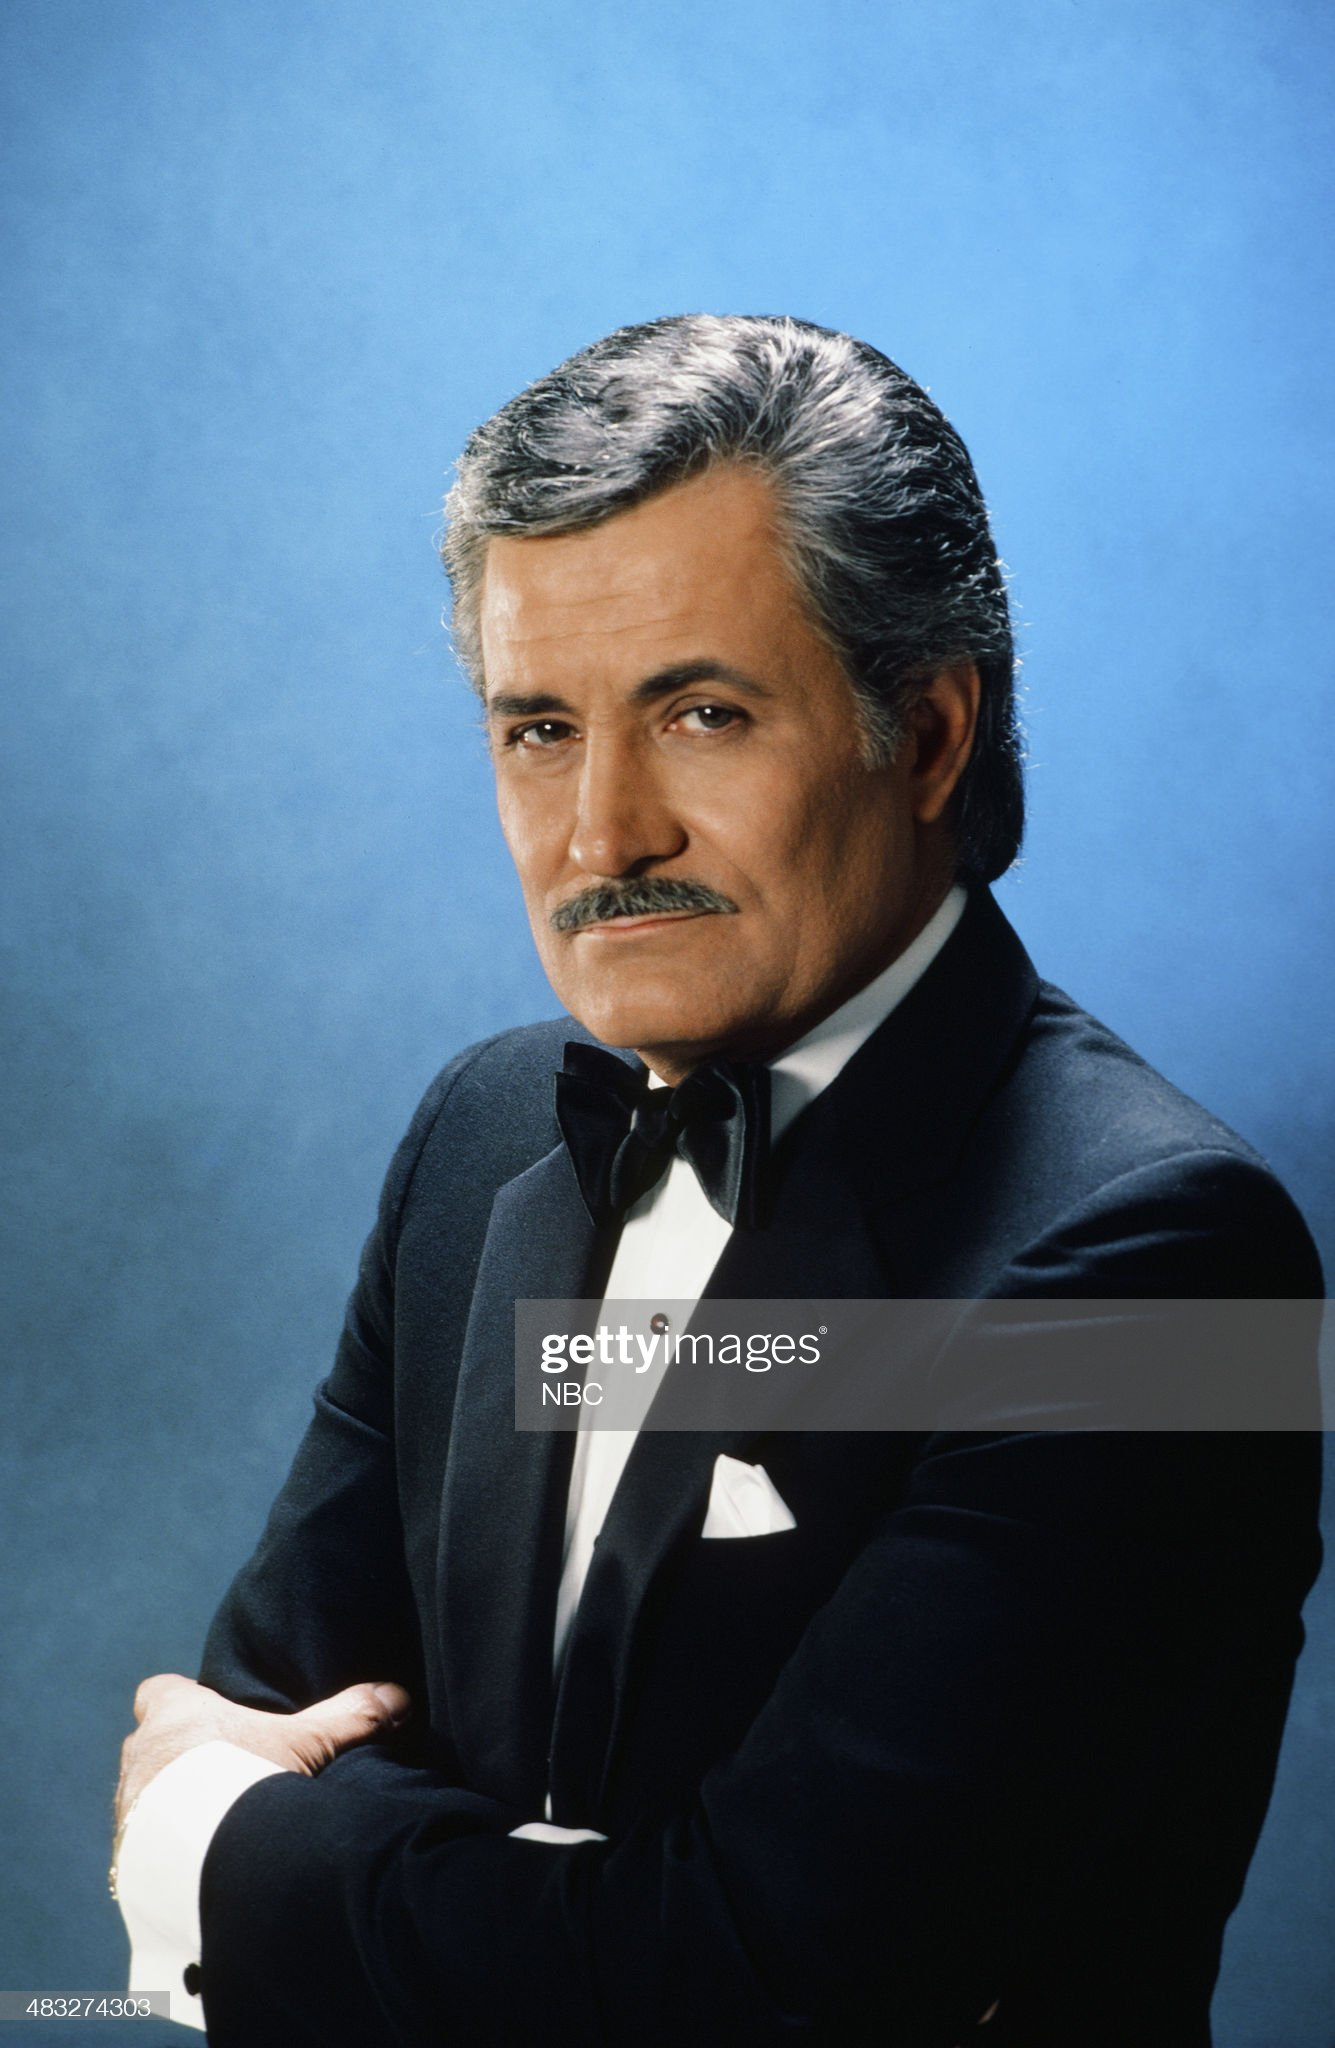 pictured-john-aniston-as-victor-kiriakis-picture-id483274303